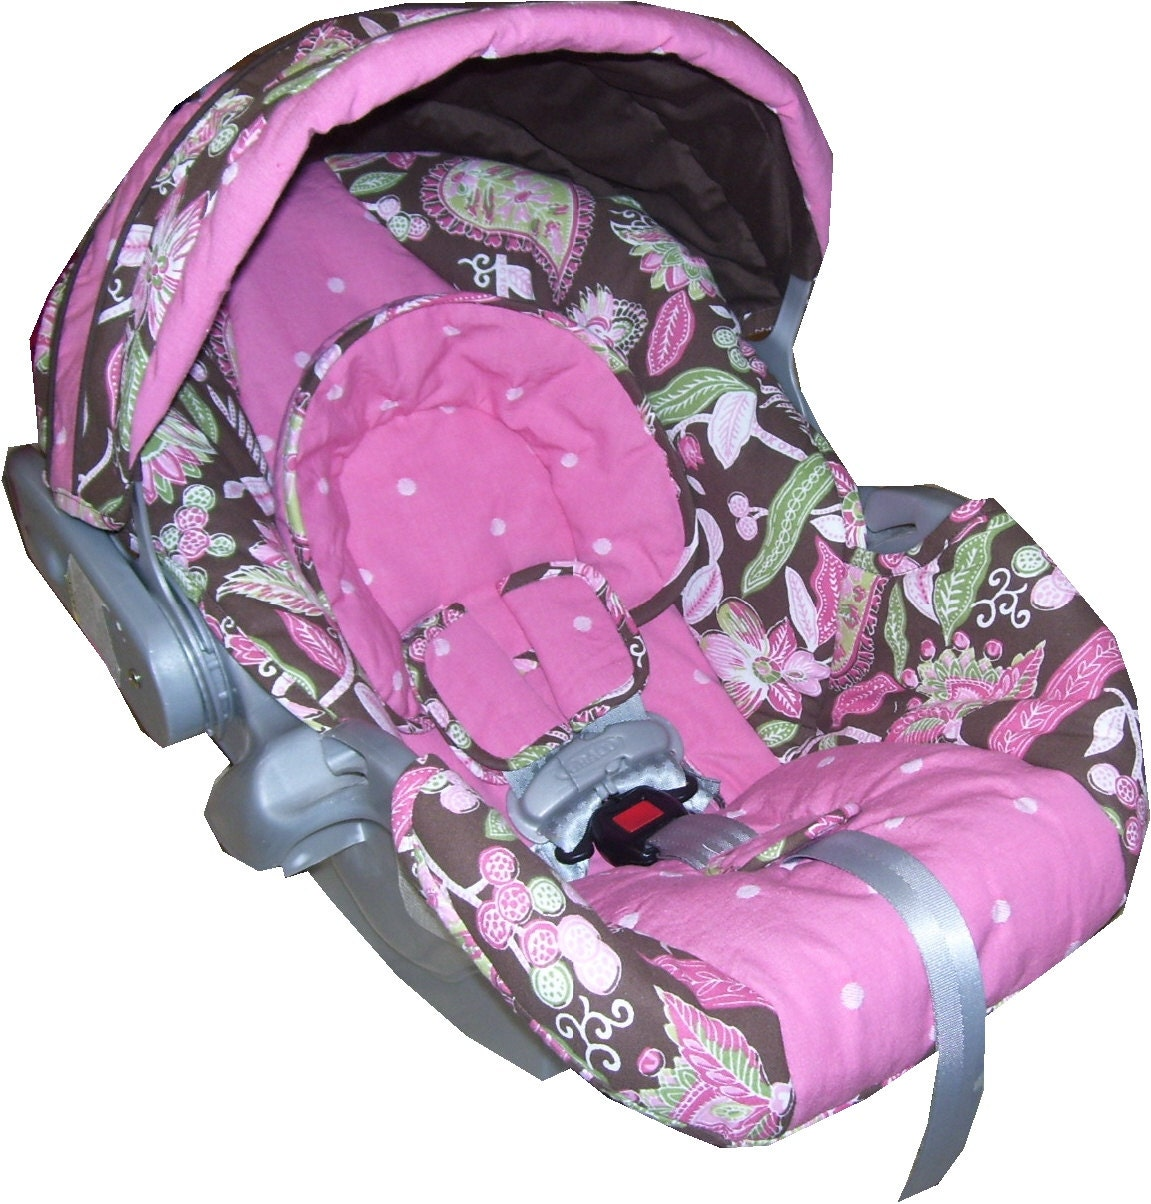 emily efmaier designed her own graco snugride by yourcarseatcover. Black Bedroom Furniture Sets. Home Design Ideas